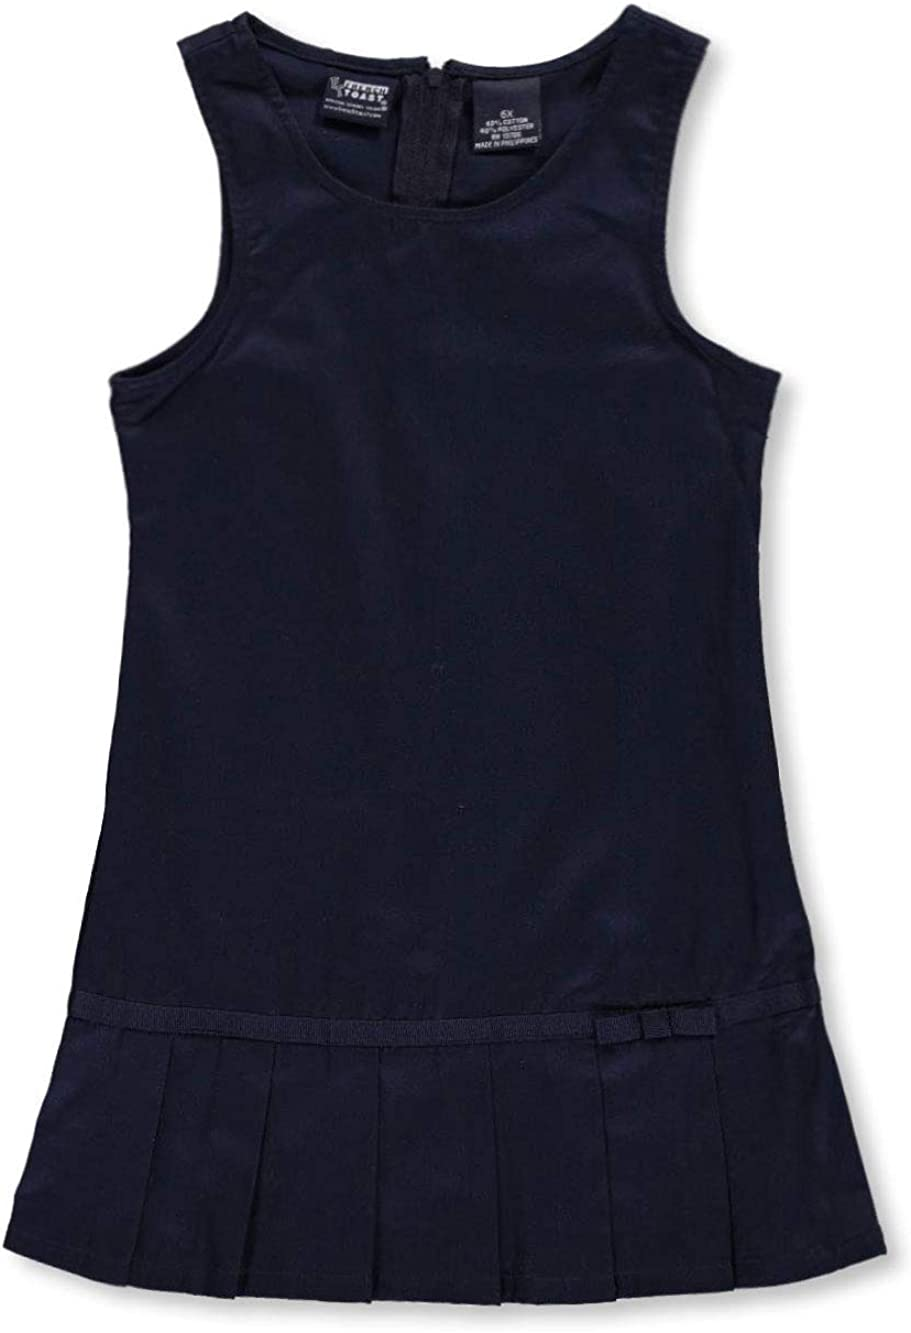 French Toast Big Girls' Pleat Bow Jumper - Navy, 10